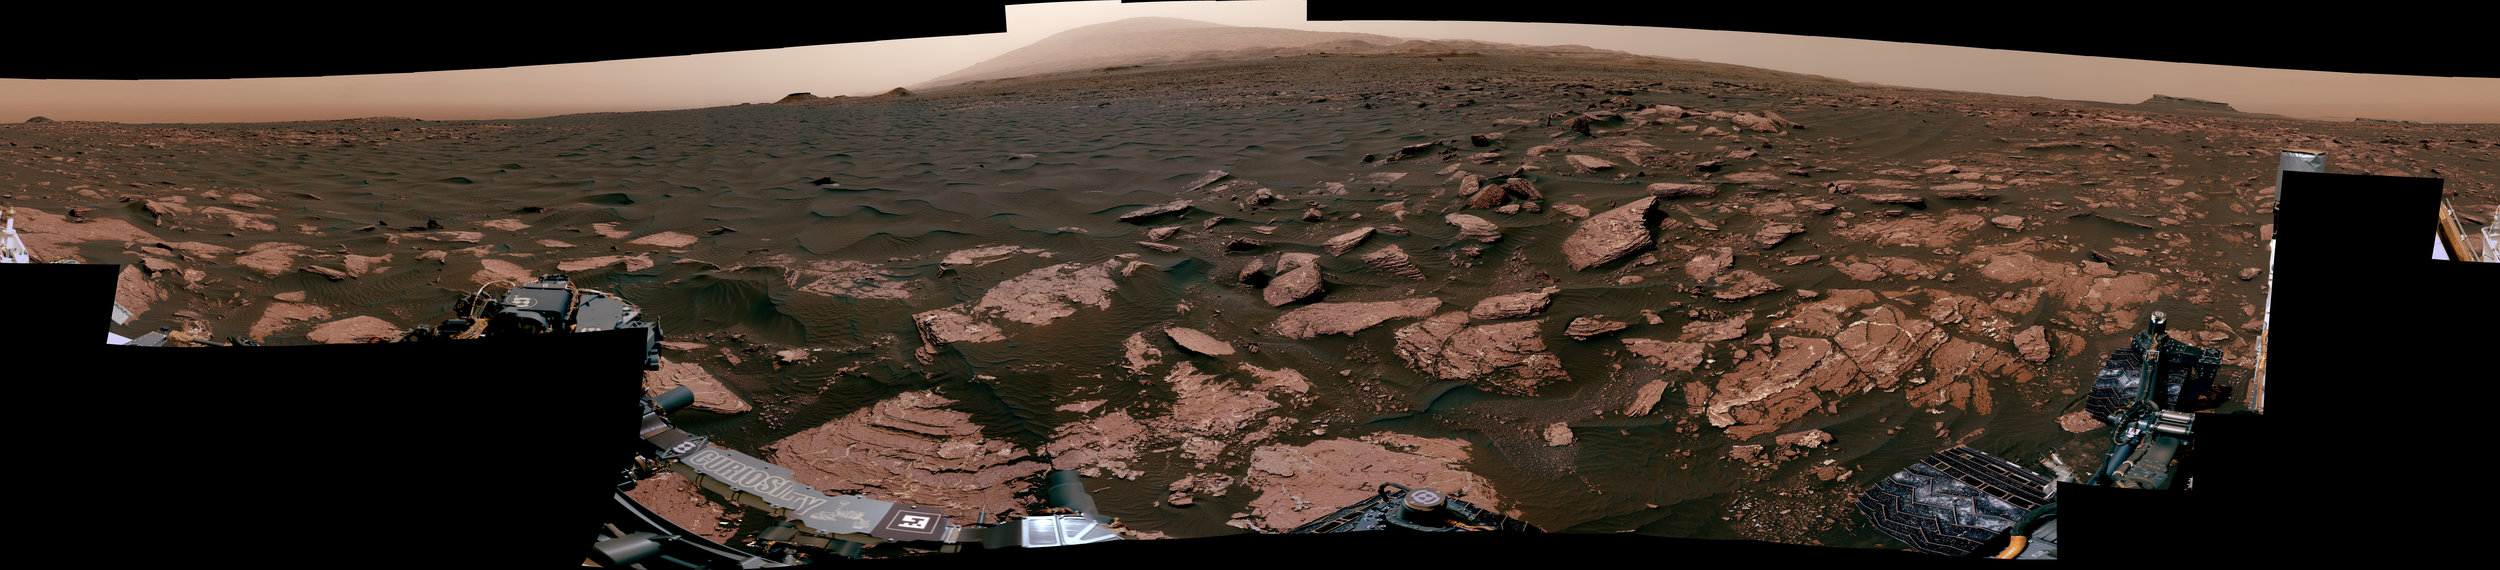 This 360-degree scene from the Mastcam on NASA's Curiosity Mars rover includes part of a linear-shaped dune the rover examined in early 2017 for comparison with what it found previously at crescent-shaped dunes. The view shows the dark, rippled surface of the active dune, near sedimentary bedrock. - Image Credits: NASA/JPL-Caltech/MSSS